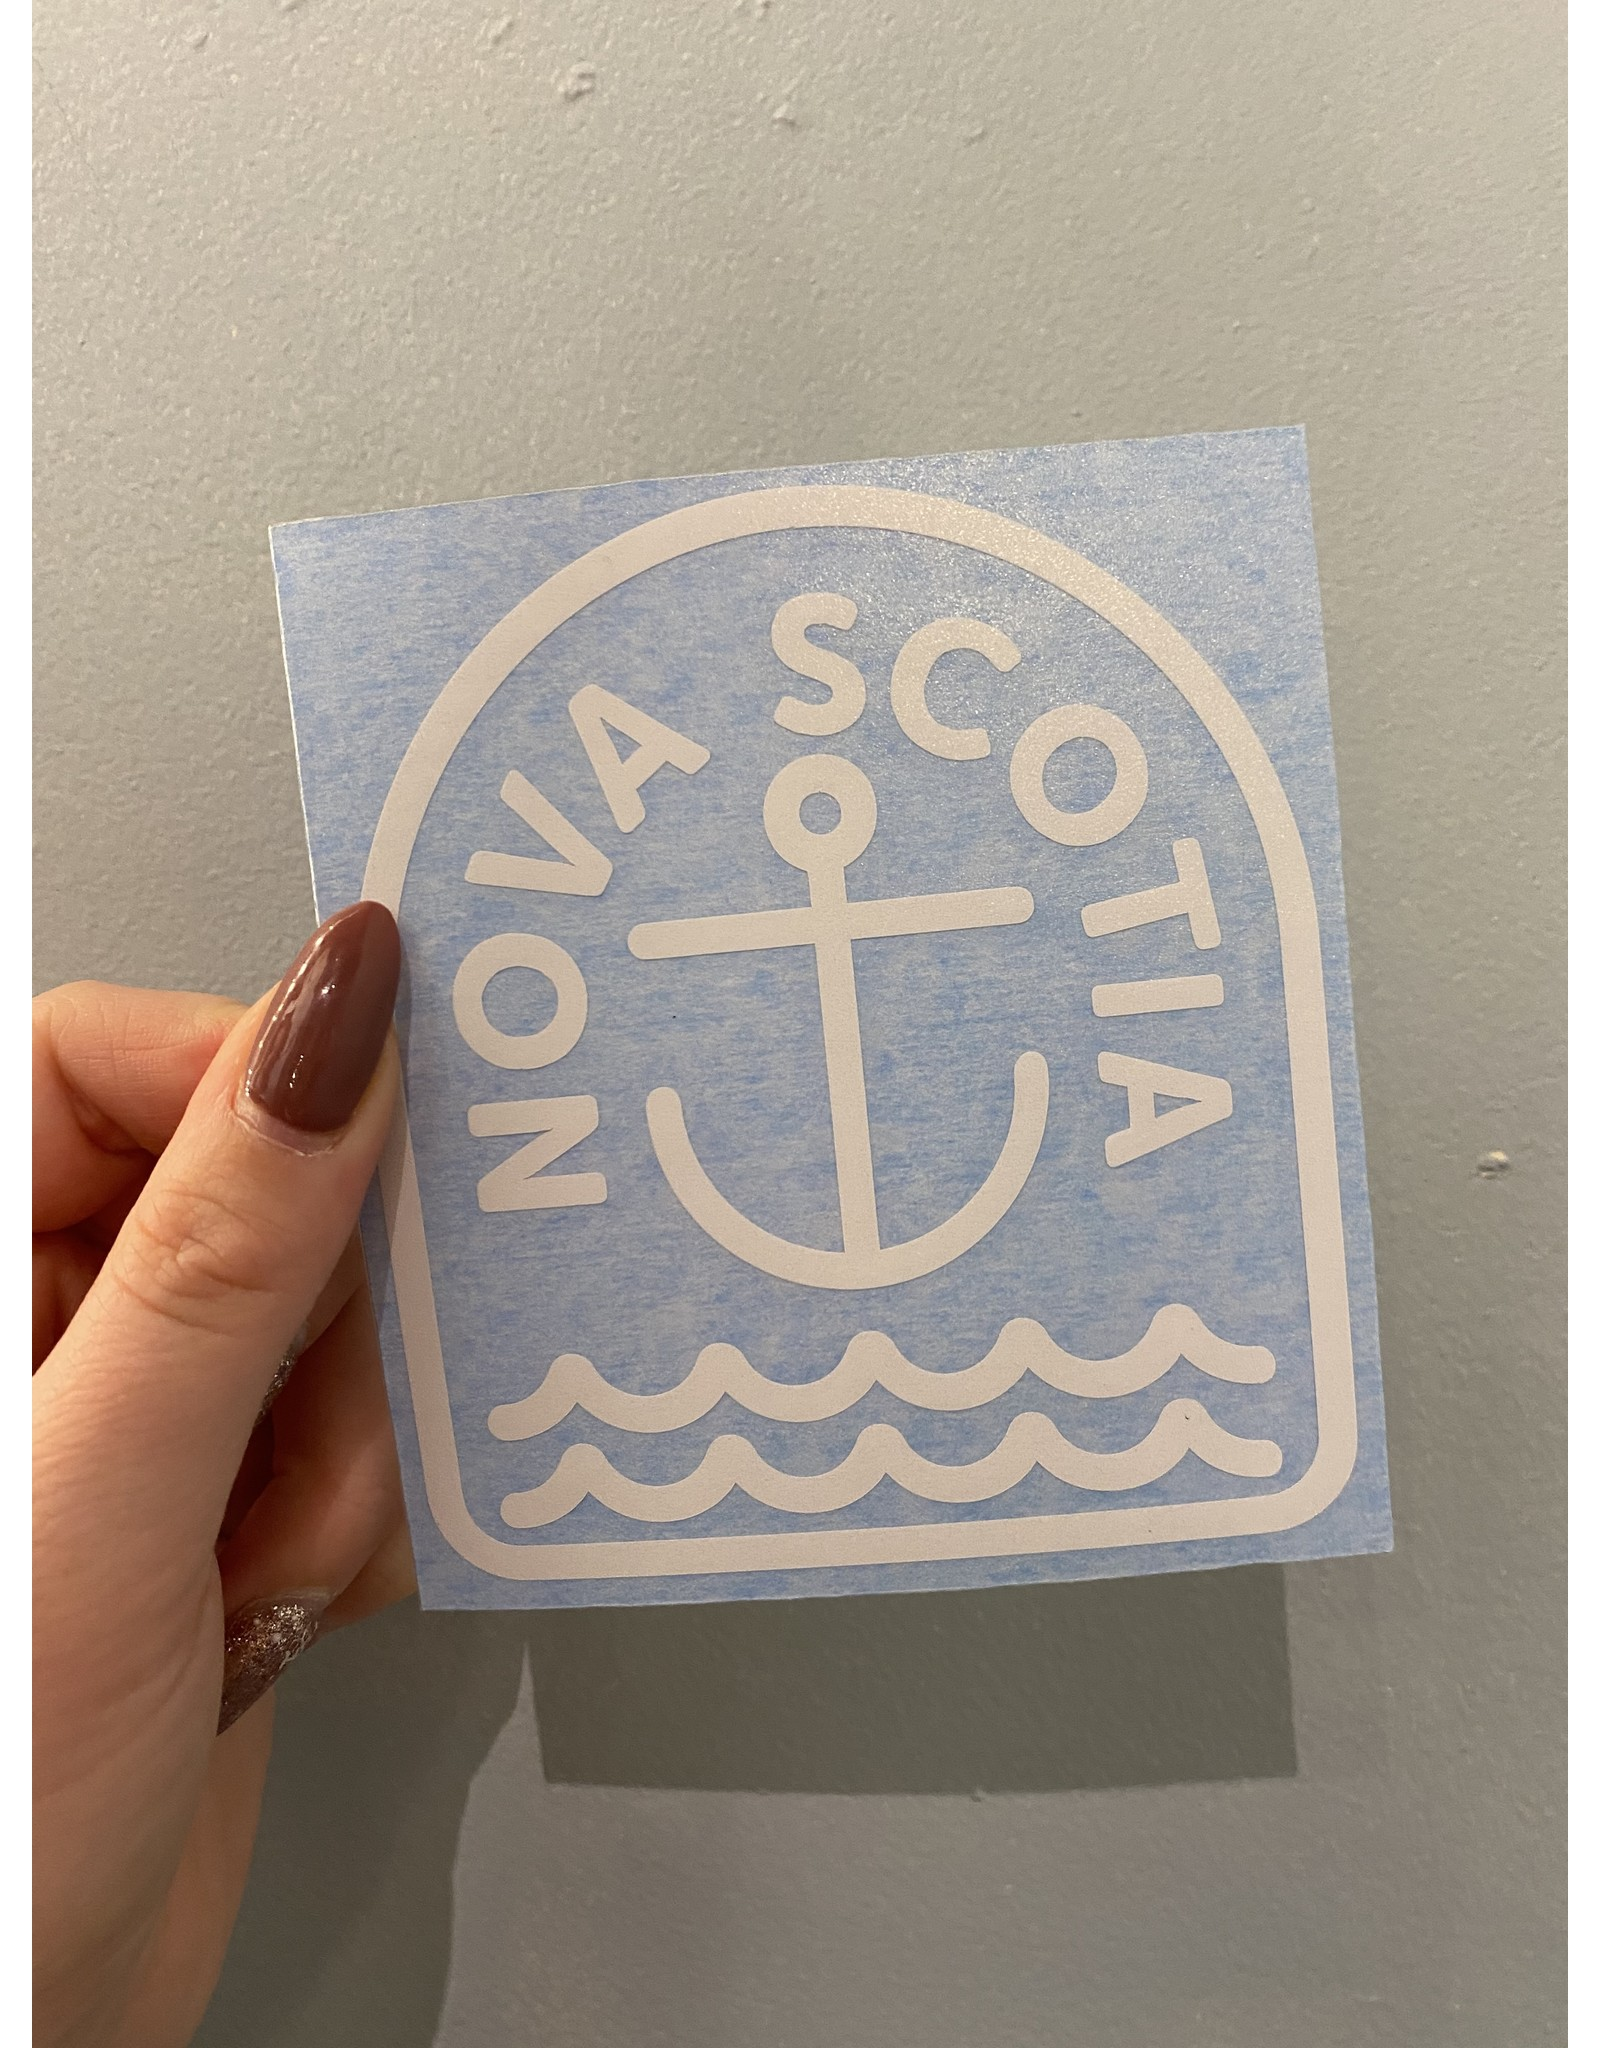 SST - Nova Scotia Anchor Sticker